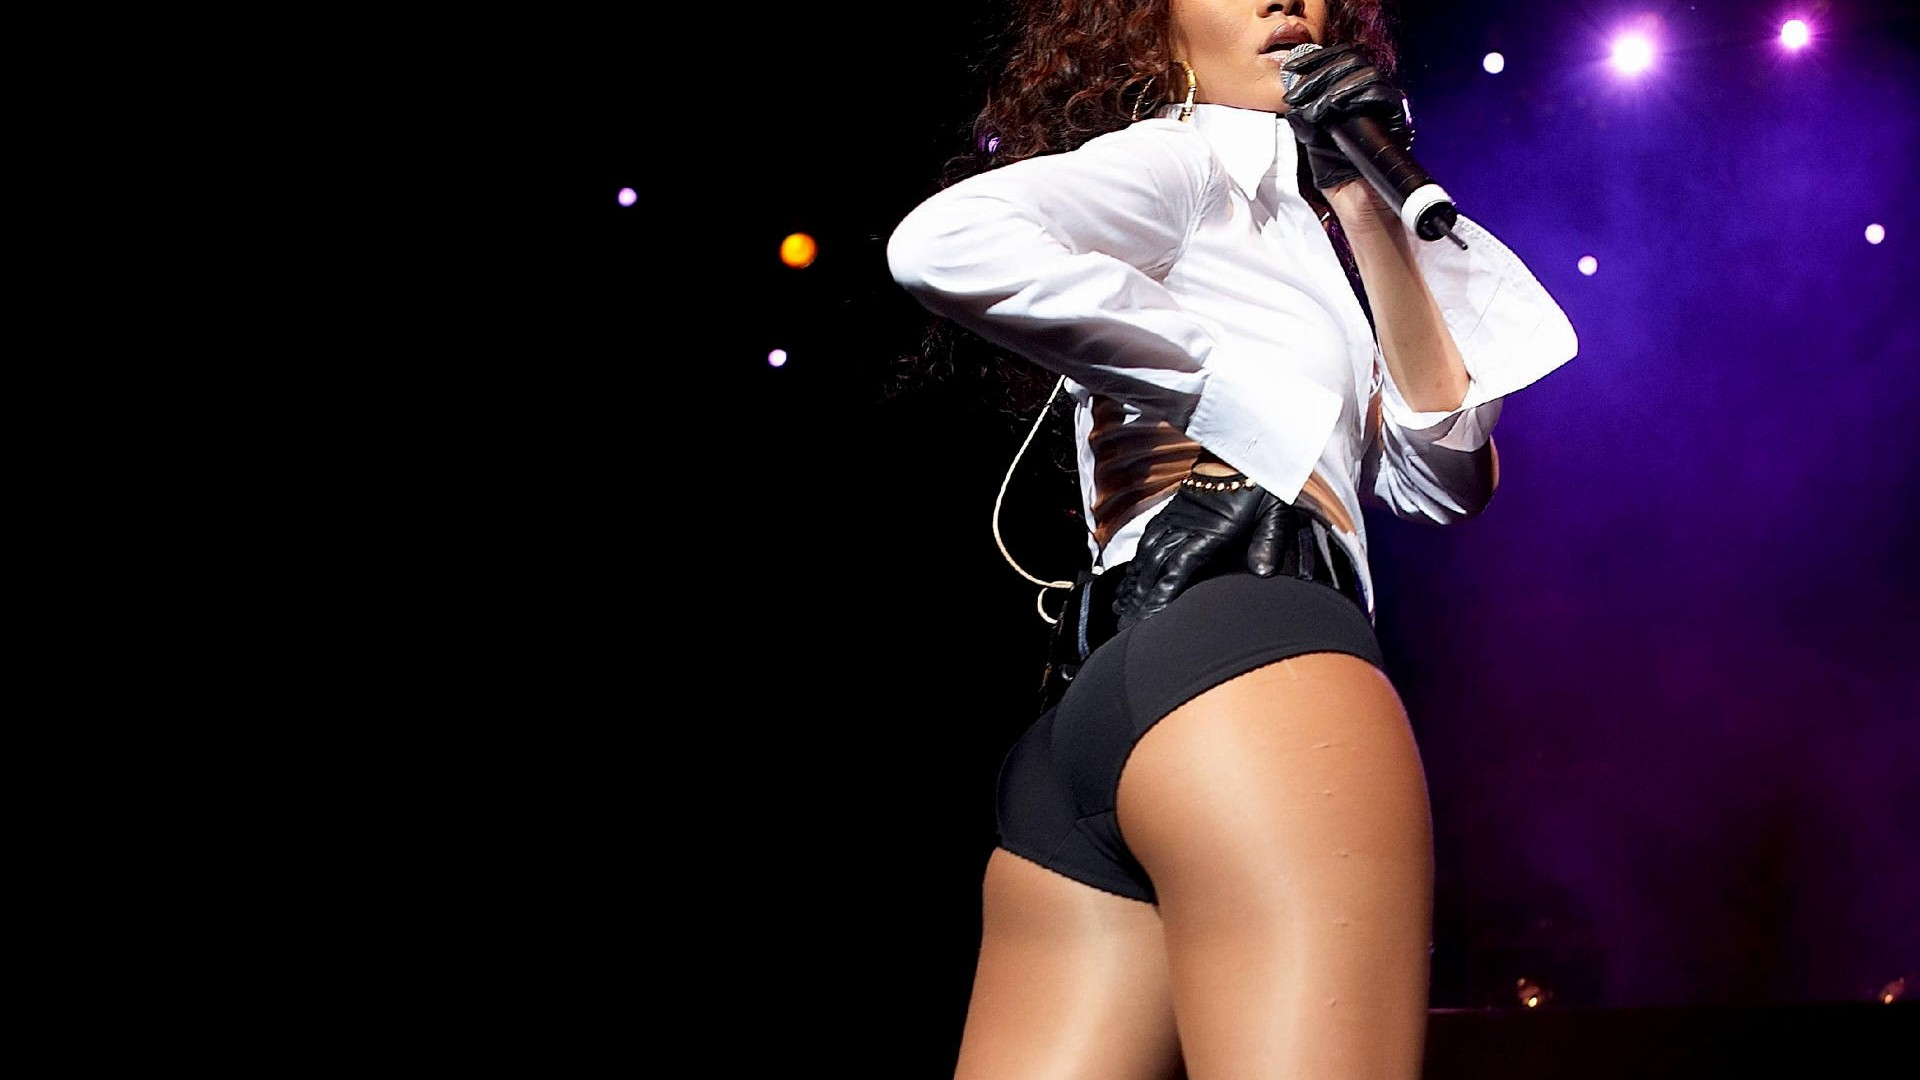 Rihanna Rear View Wallpapers